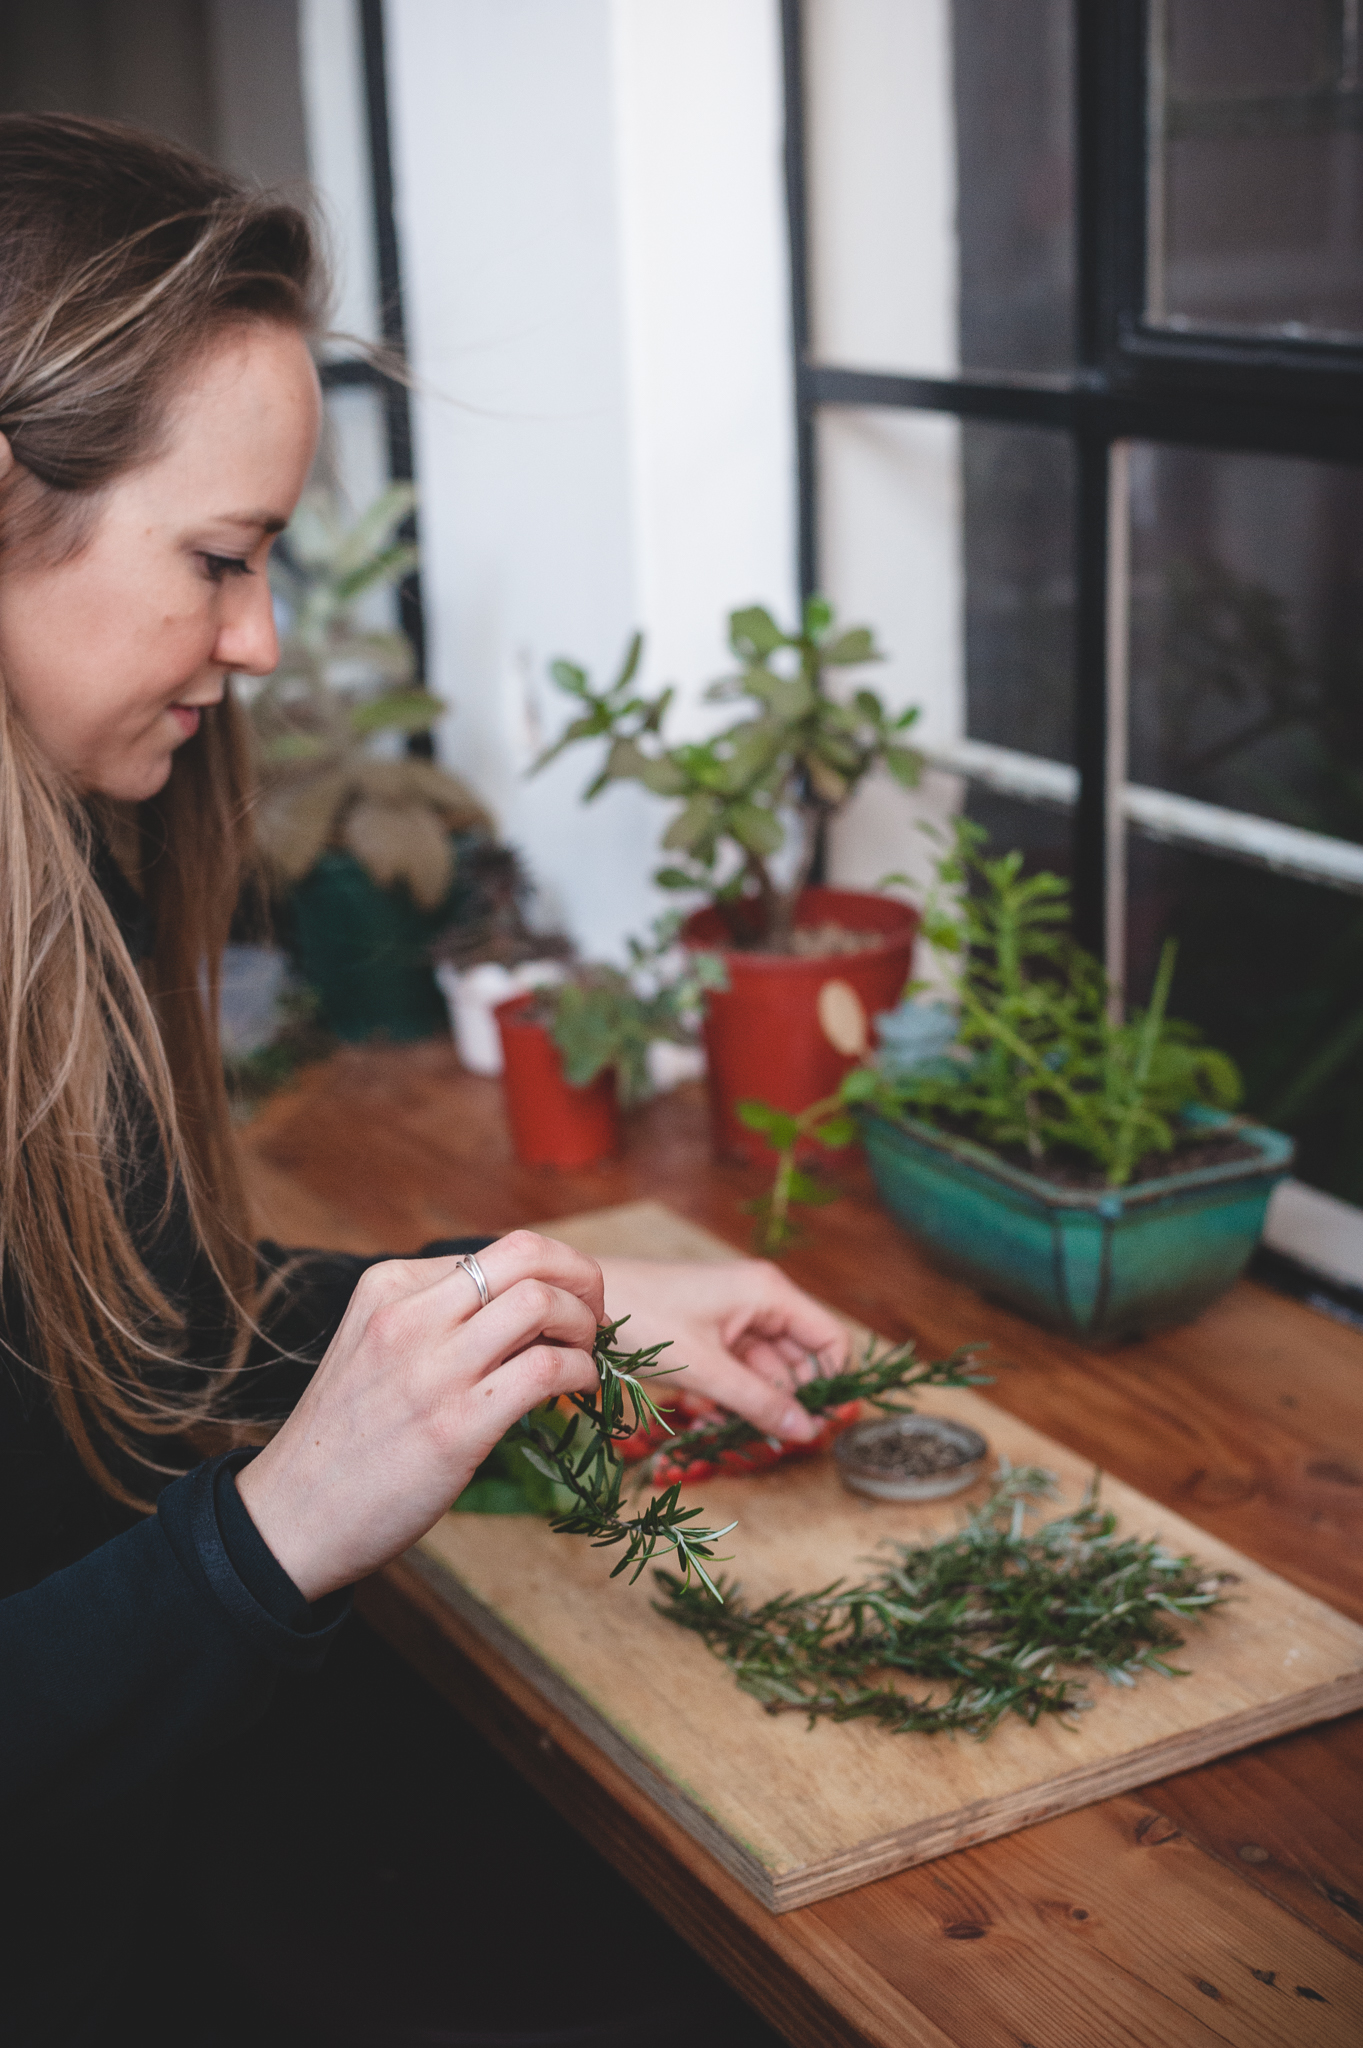 Using what you can find - Rosemary | How to Plan an Eco-Friendly Event ft. Yonder Collective | Eco-Friendly living by The Foraged Life